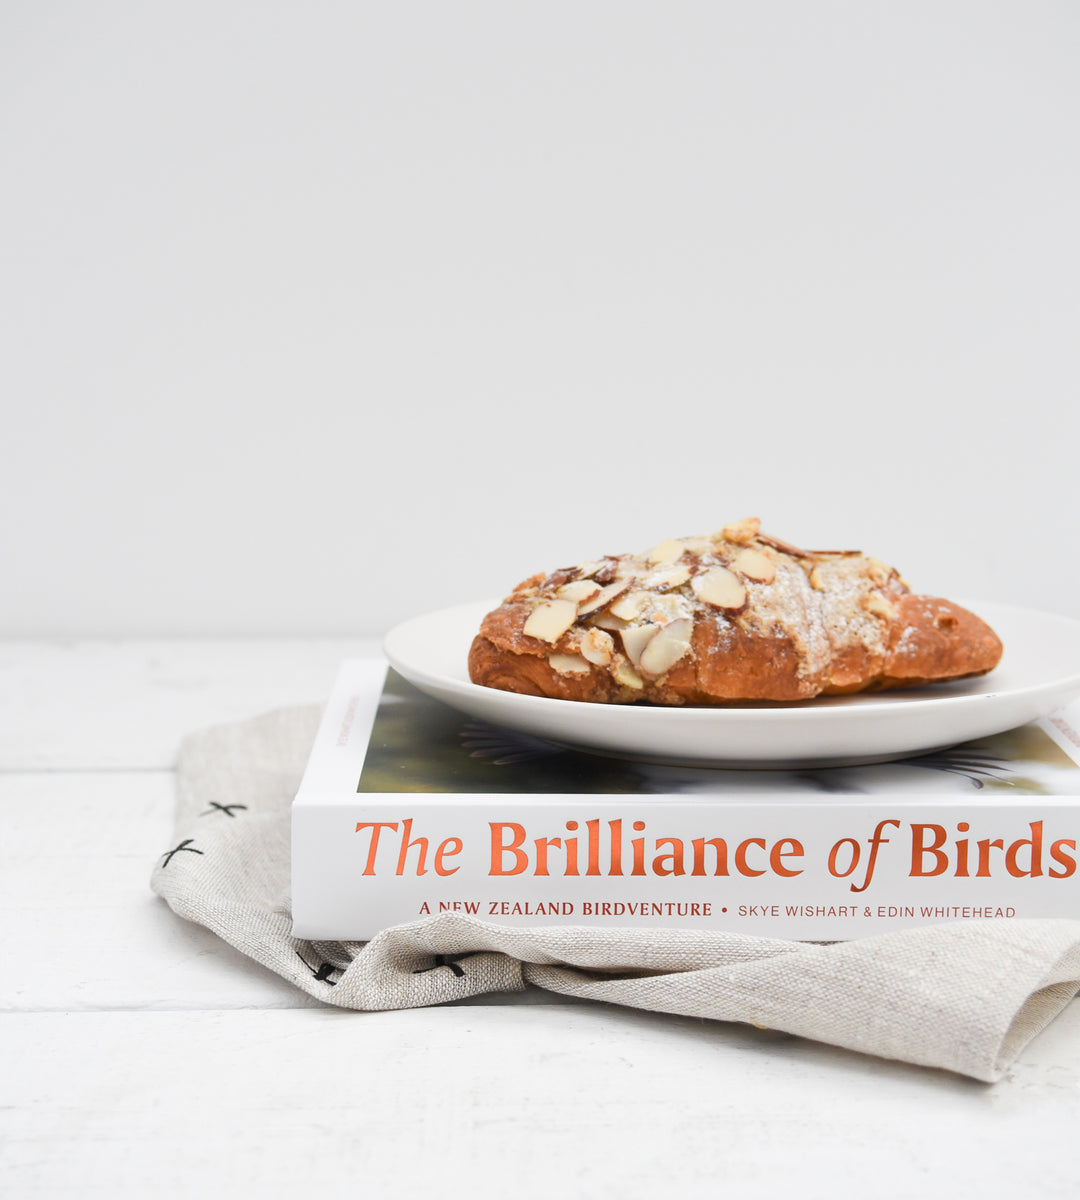 The Brilliance of Birds | by Skye Wishart and Edin Whitehead